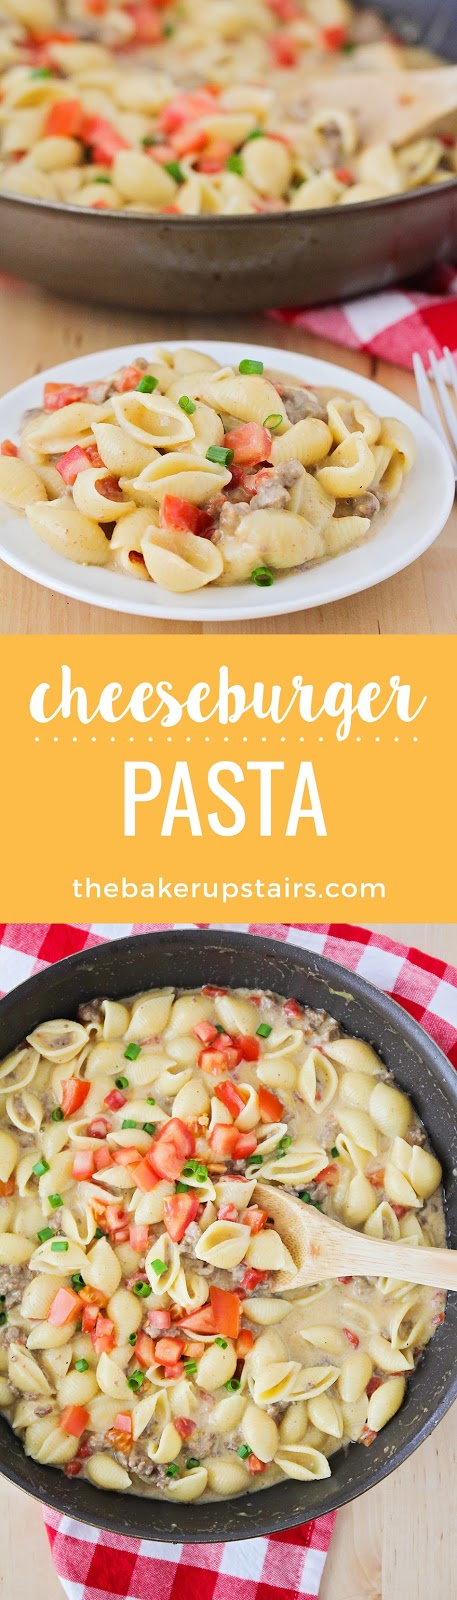 This delicious and savory cheeseburger pasta is quick and easy to make, and sure to be a favorite with the whole family!